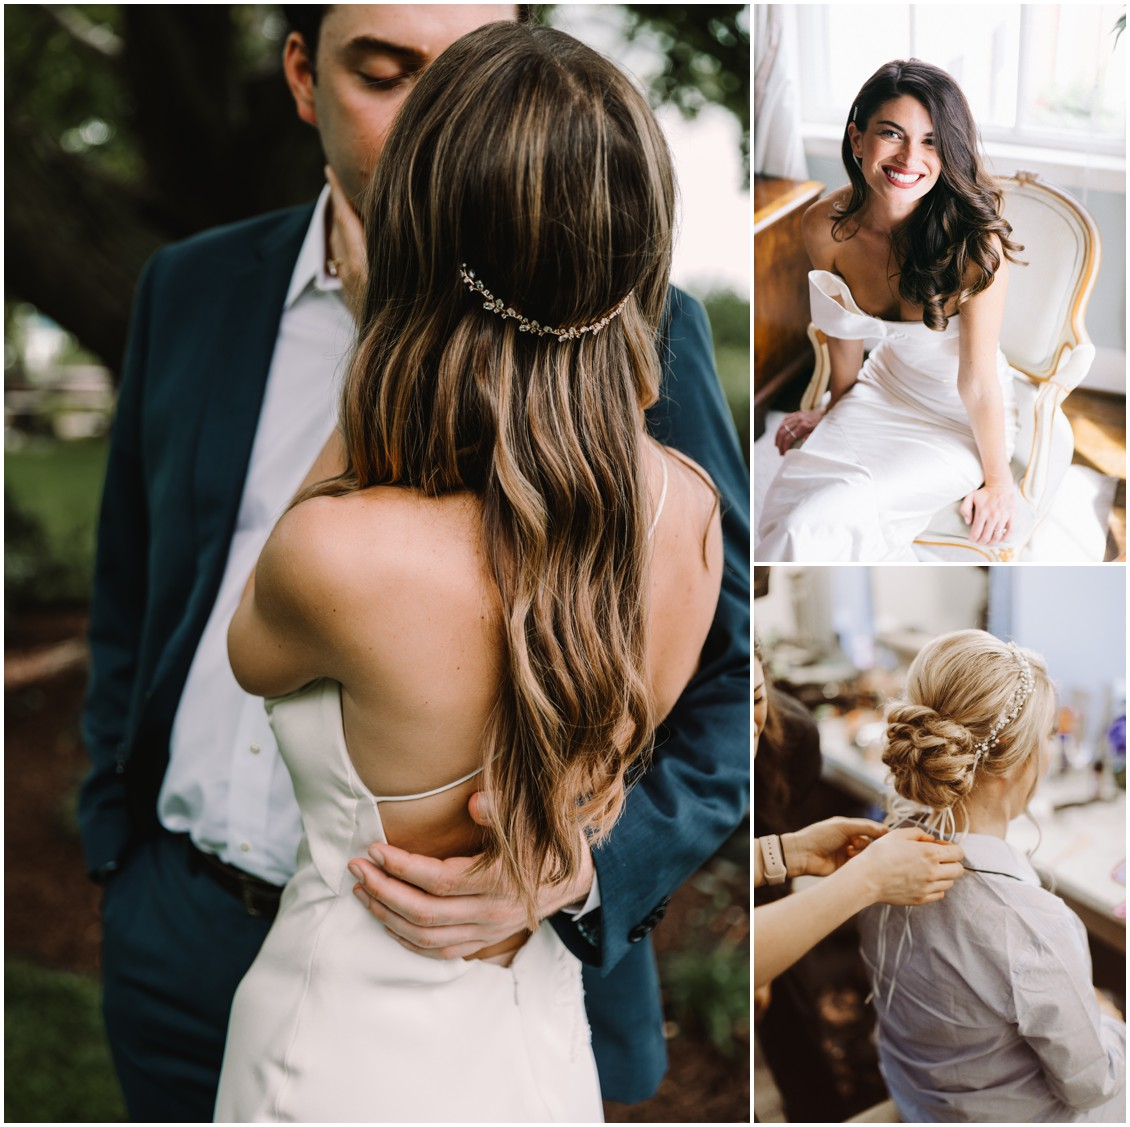 Wedding hair trends | Hair accessories | Celebrity wedding experts | My Eastern Shore Wedding |